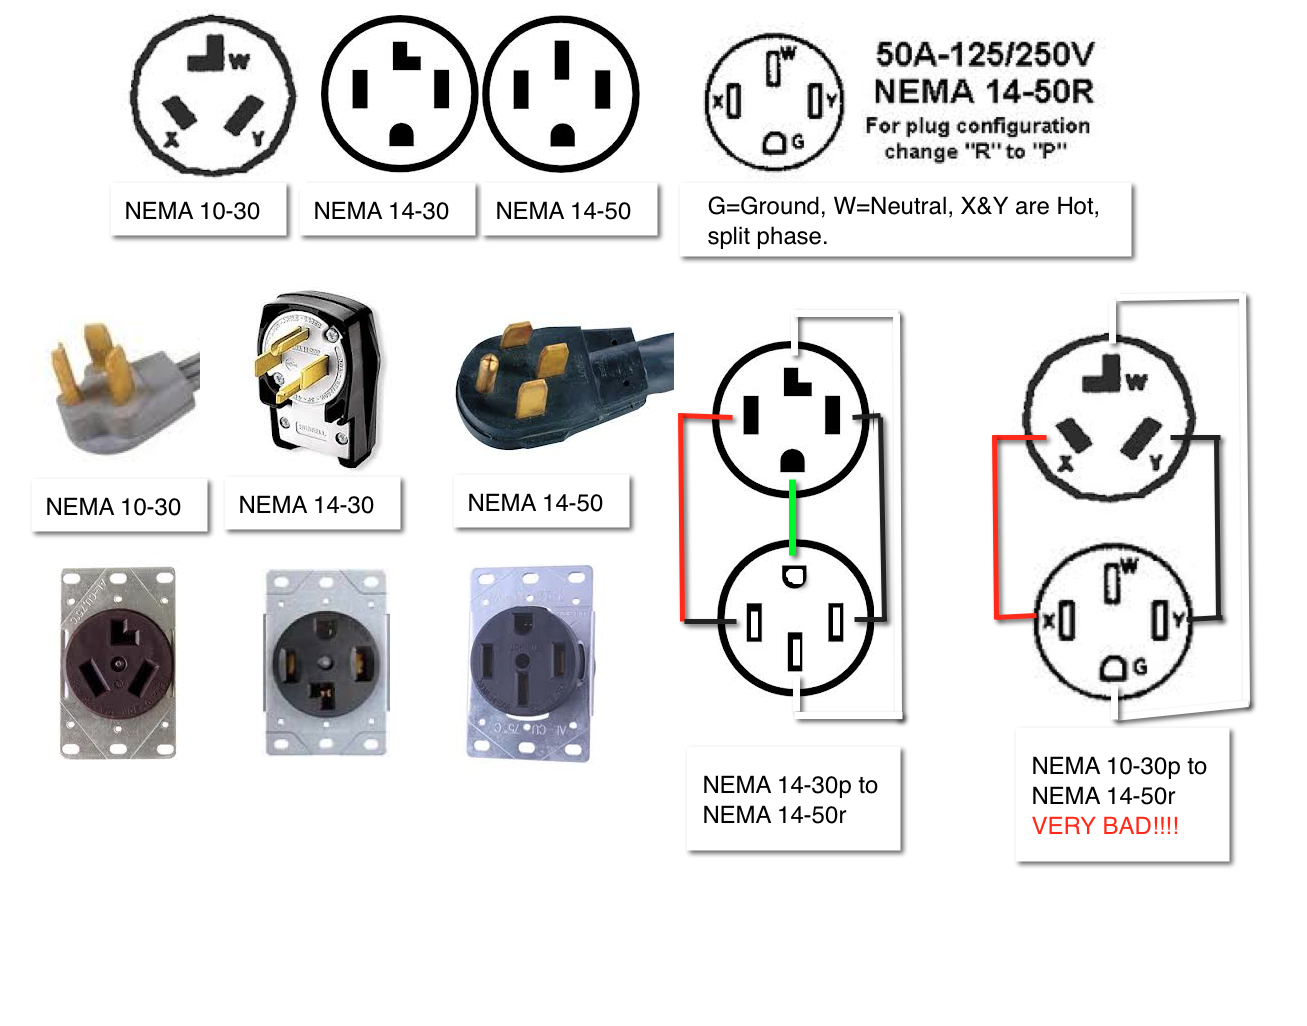 Nema 6-50 To 10-30 Plug Wiring Diagram Nema Receptacle Wiring Diagram on